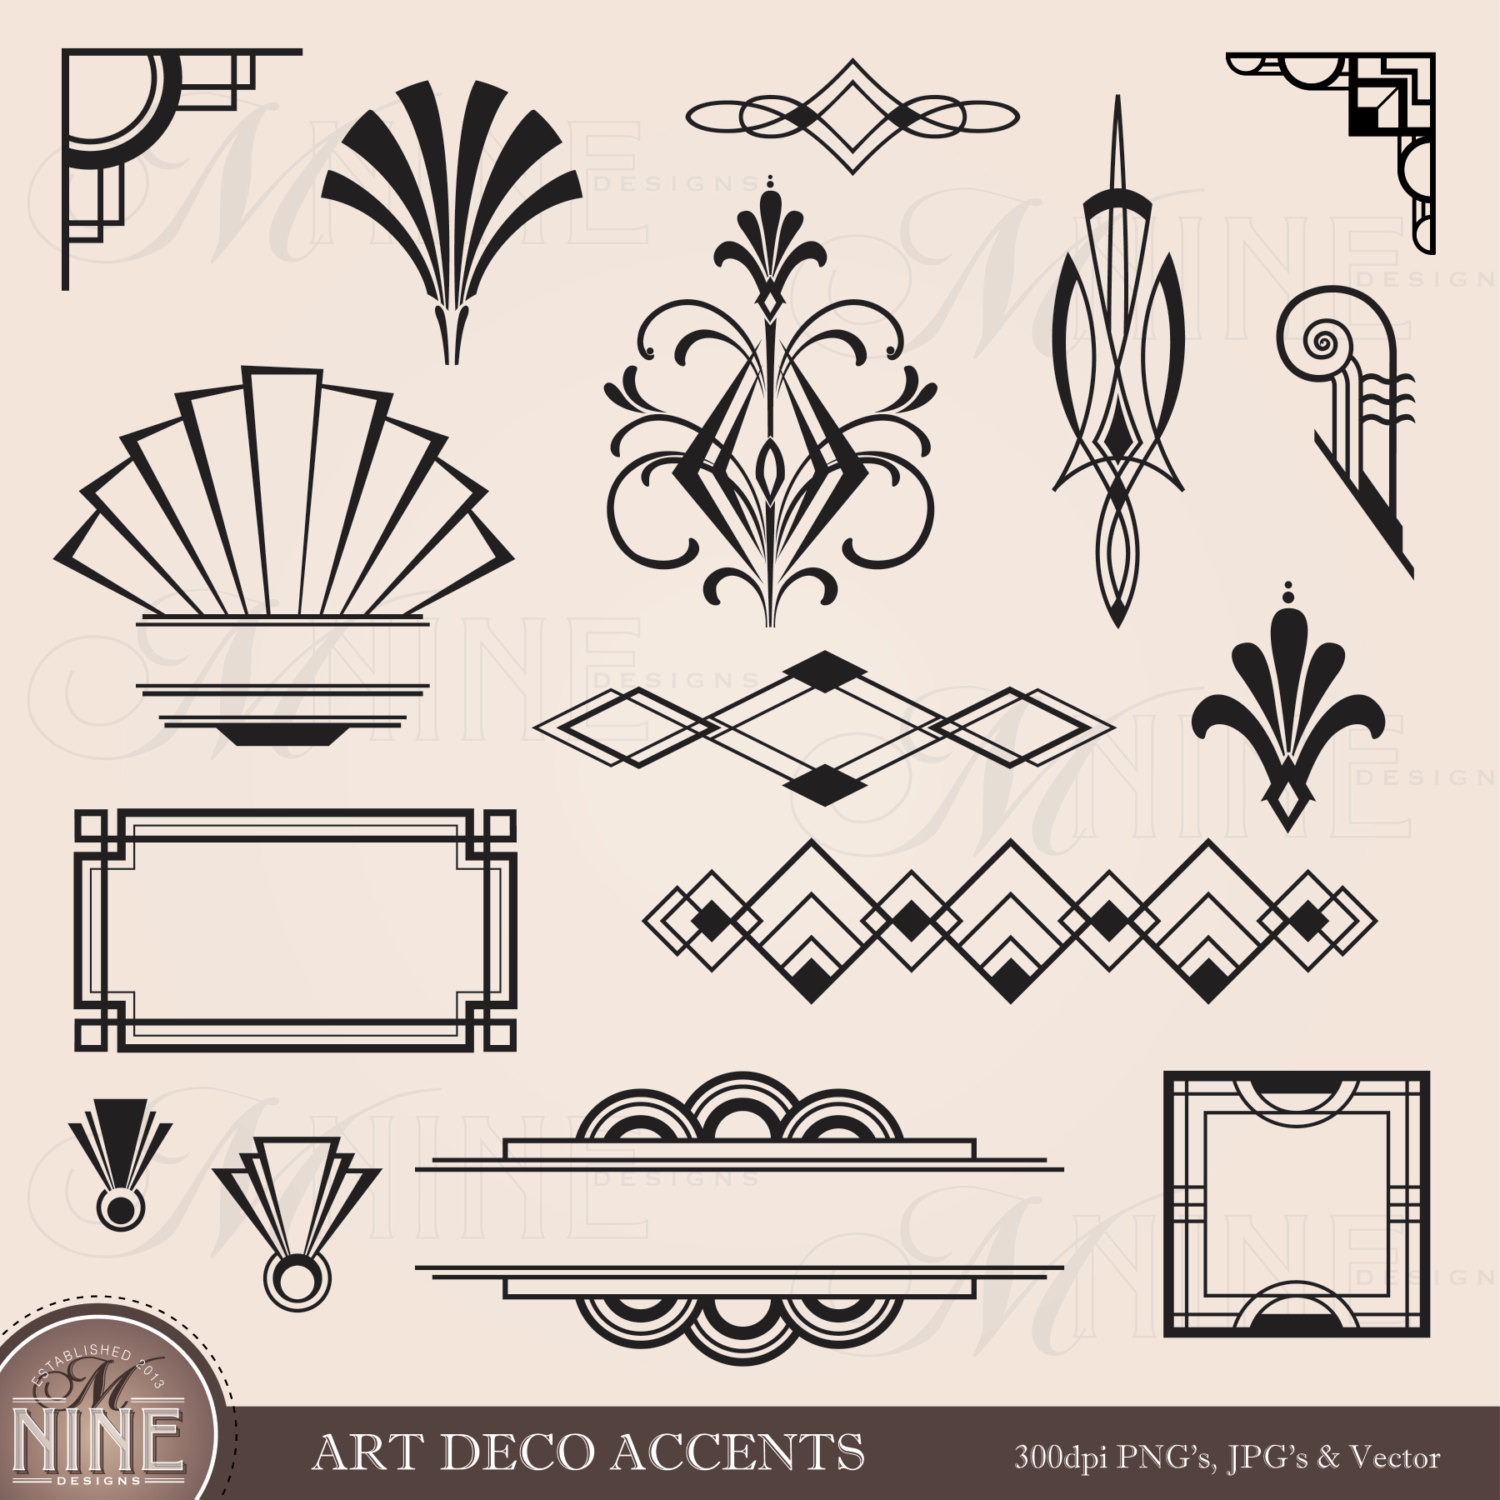 Classic clipart page accent Clipart Digital Elements Black Frames